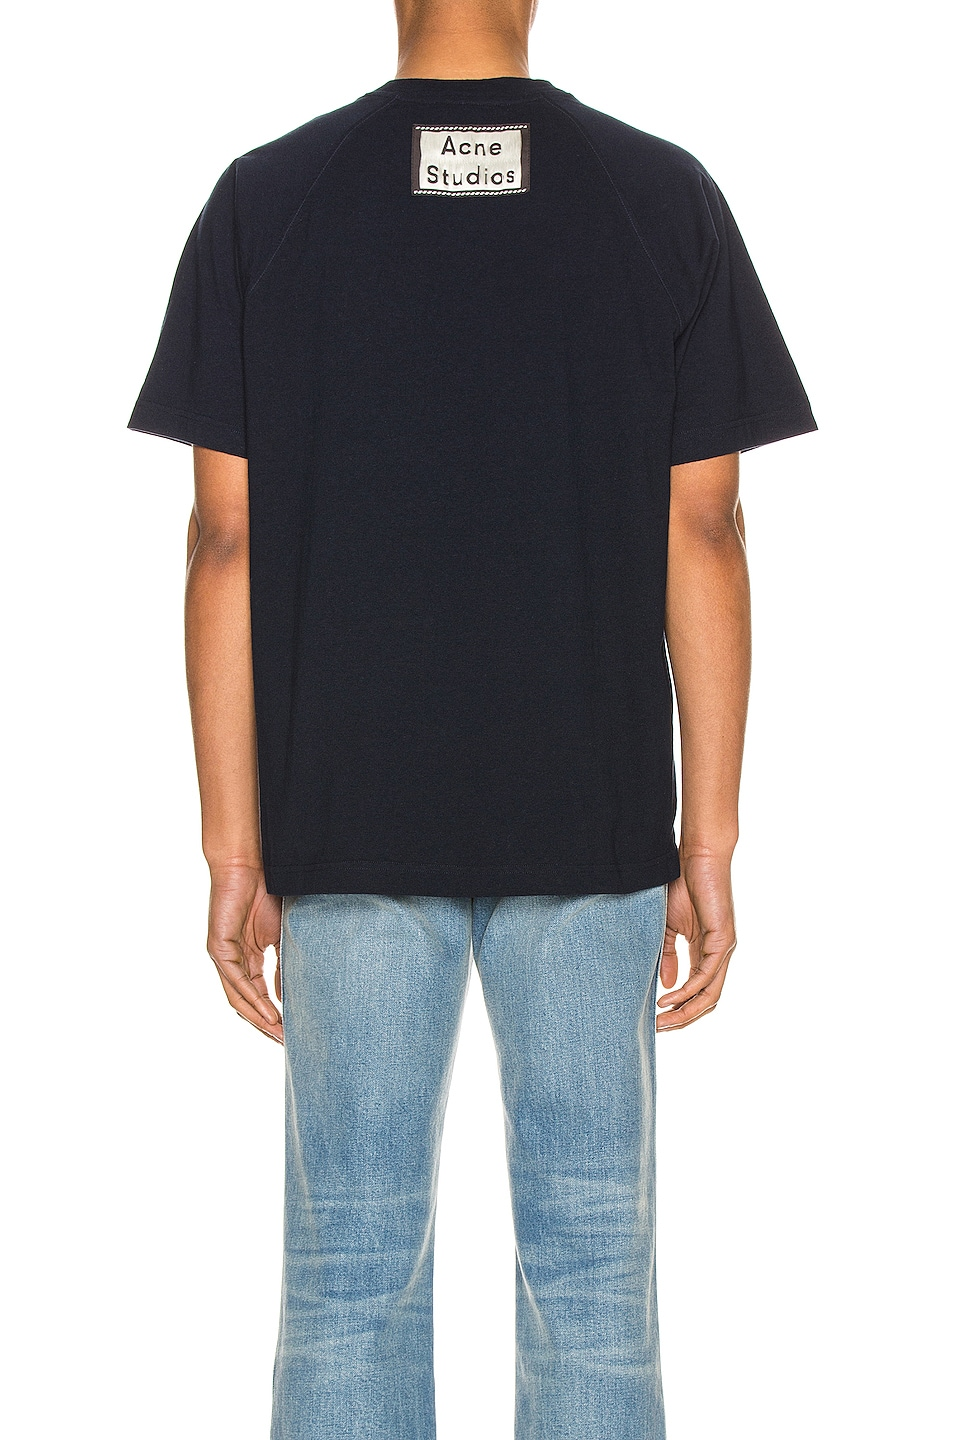 Image 4 of Acne Studios Graphic Tee in Navy Blue